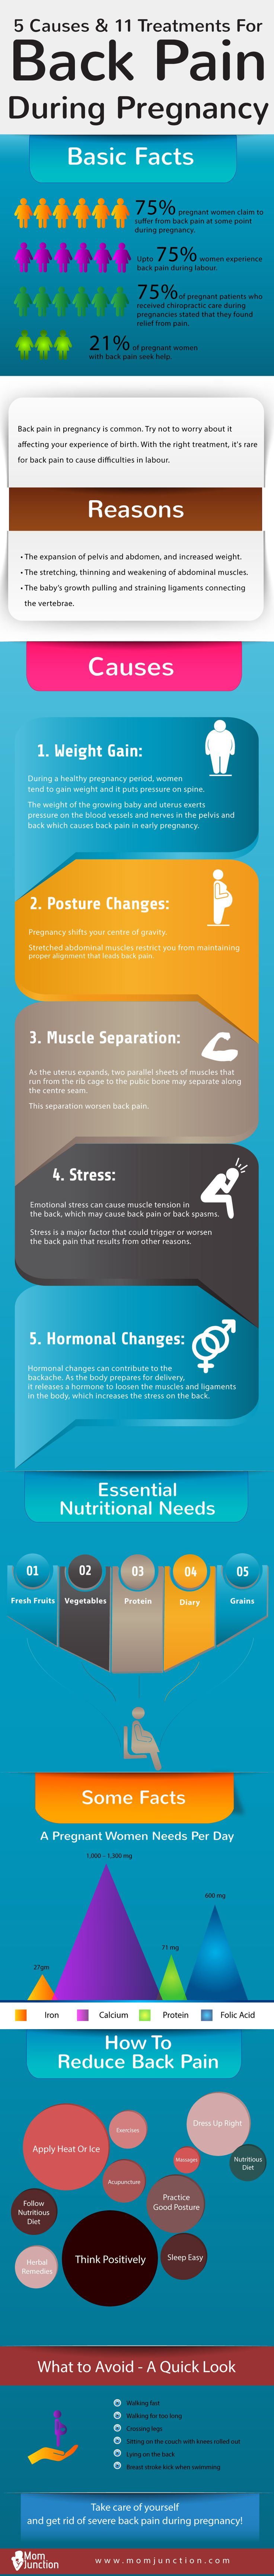 Back Pain During Pregnancy – 5 Causes And 11 Treatments